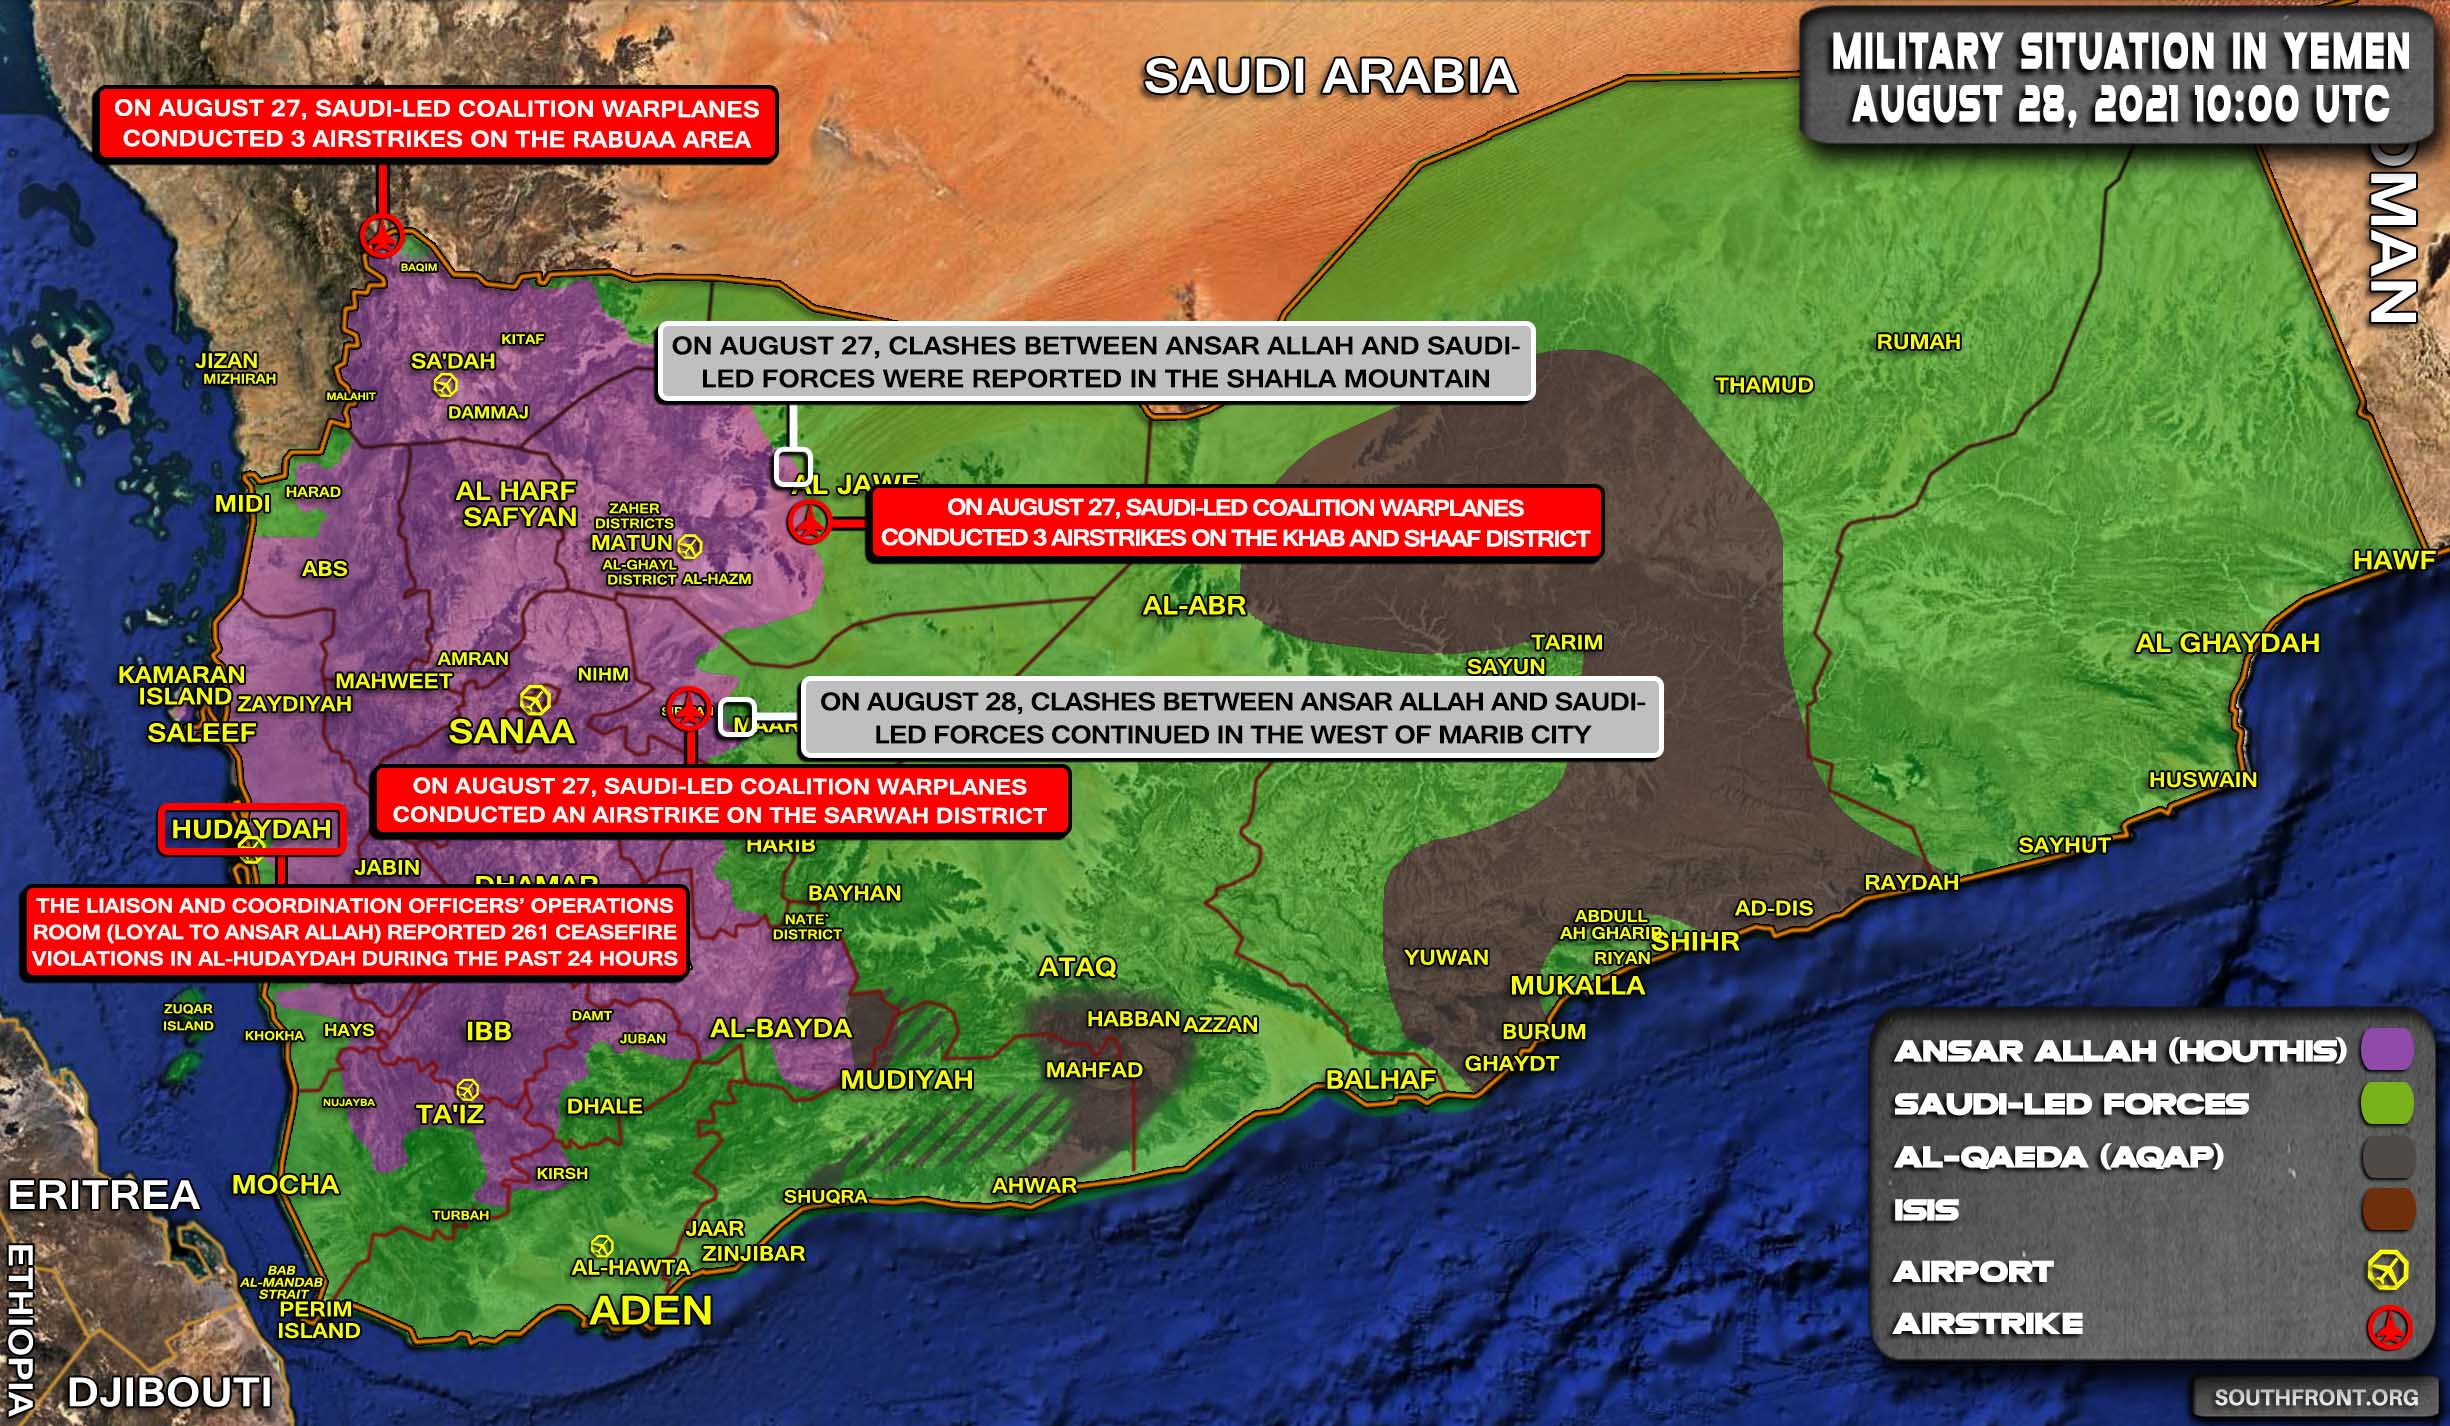 Military Situation In Yemen On August 28, 2021 (Map Update)